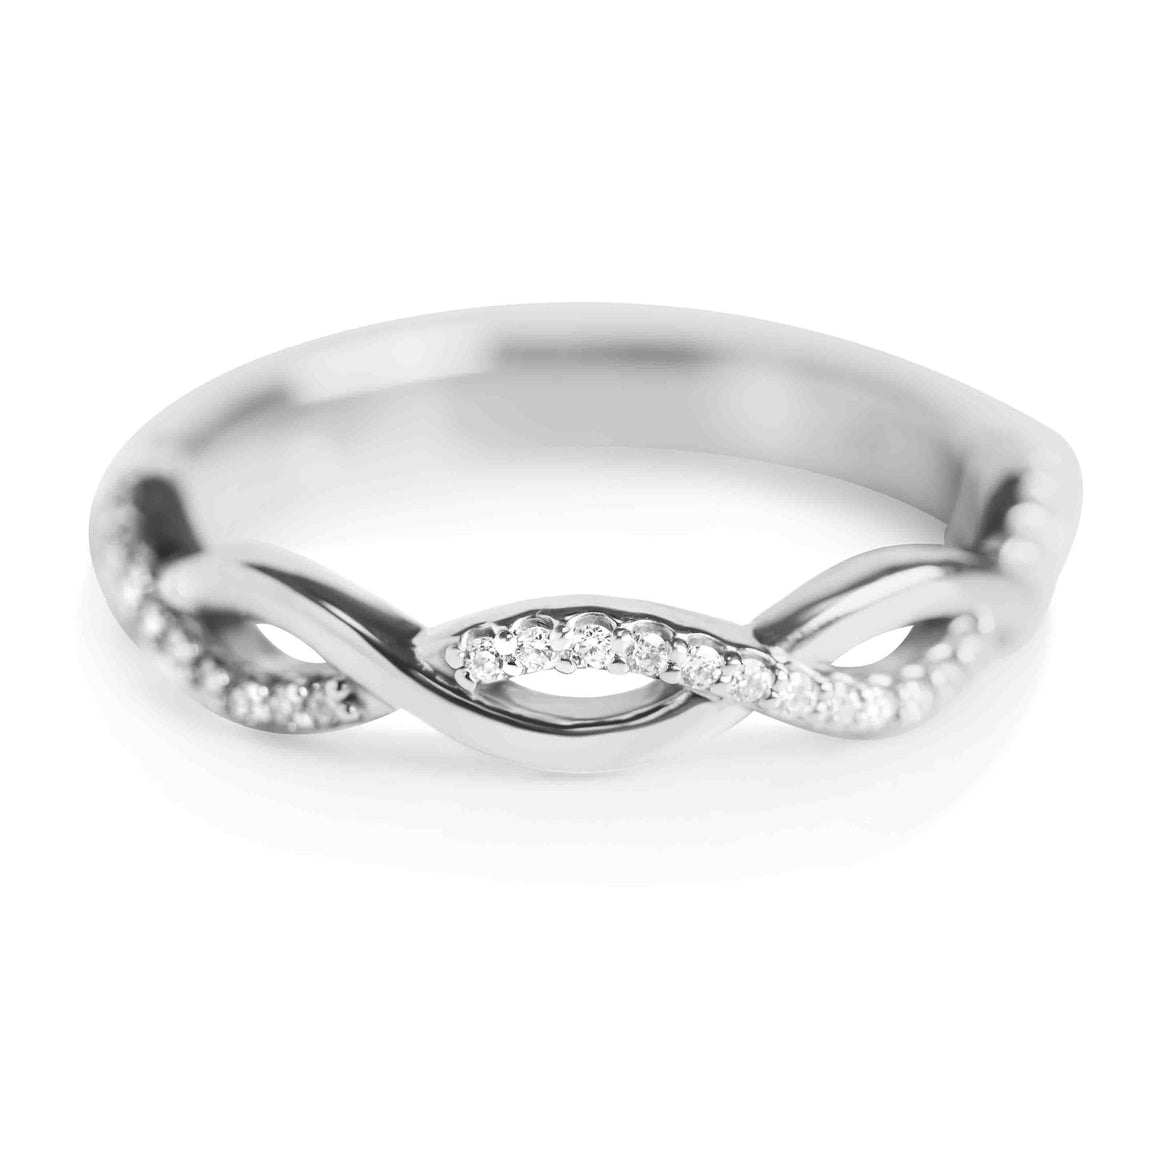 WHITE GOLD AND DIAMOND TWISTED PAVE WEDDING BAND